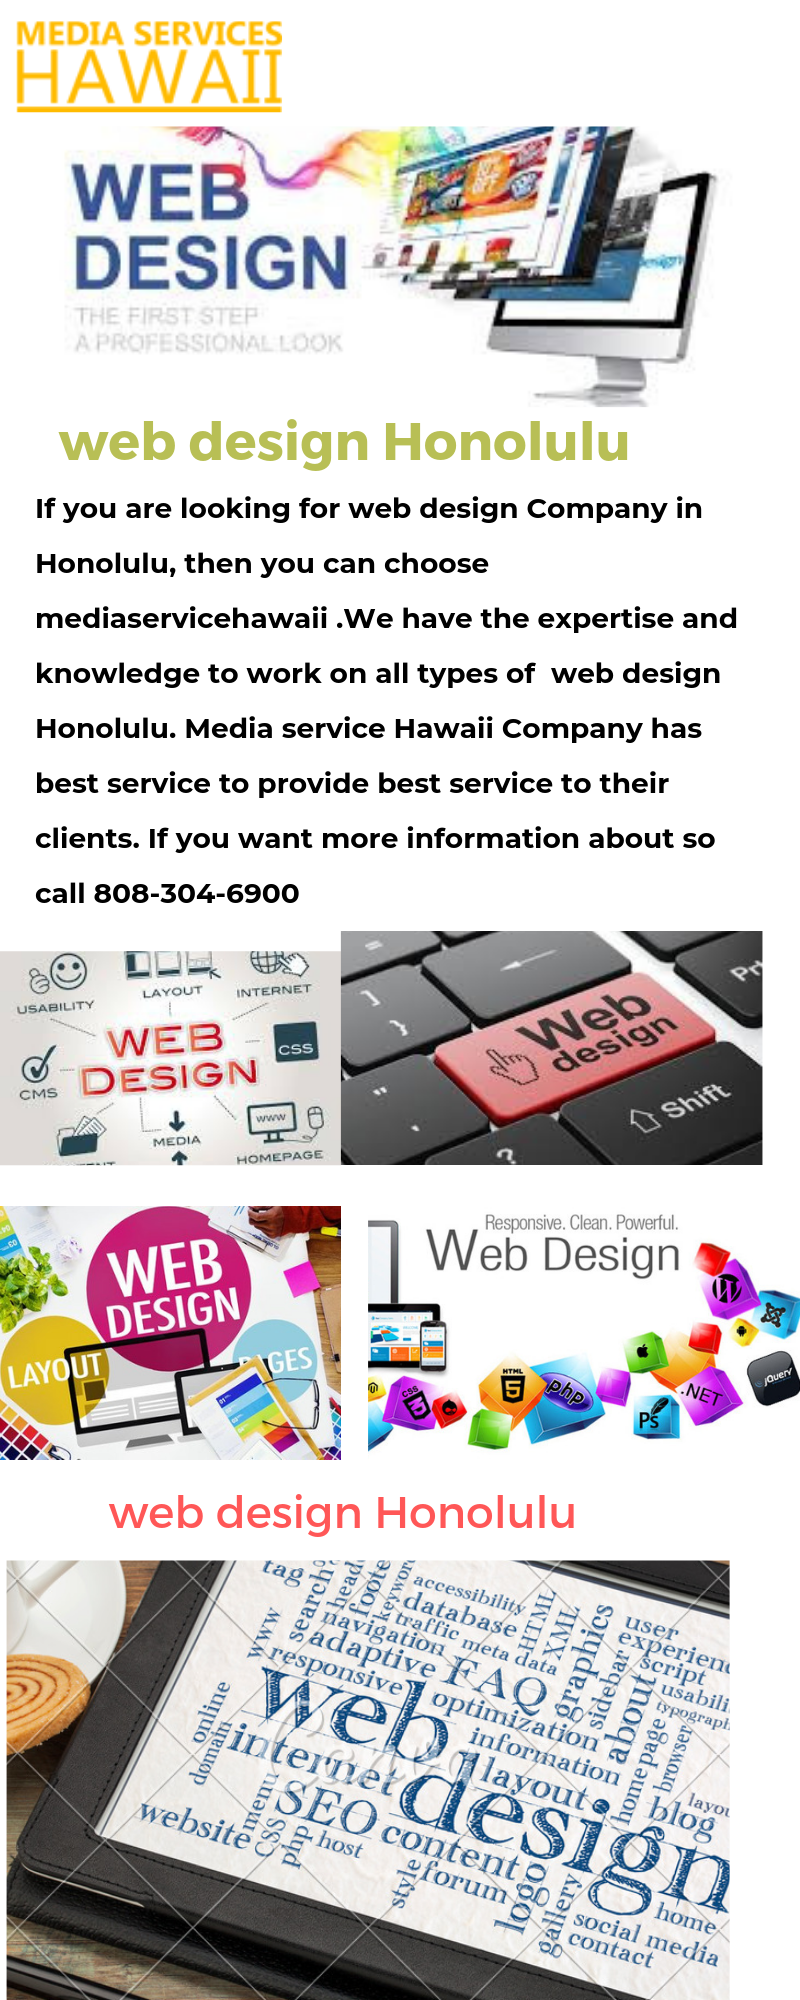 Lead Generation Honolulu Local Business Social Media Advertising With Images Web Design Web Design Company Social Media Business